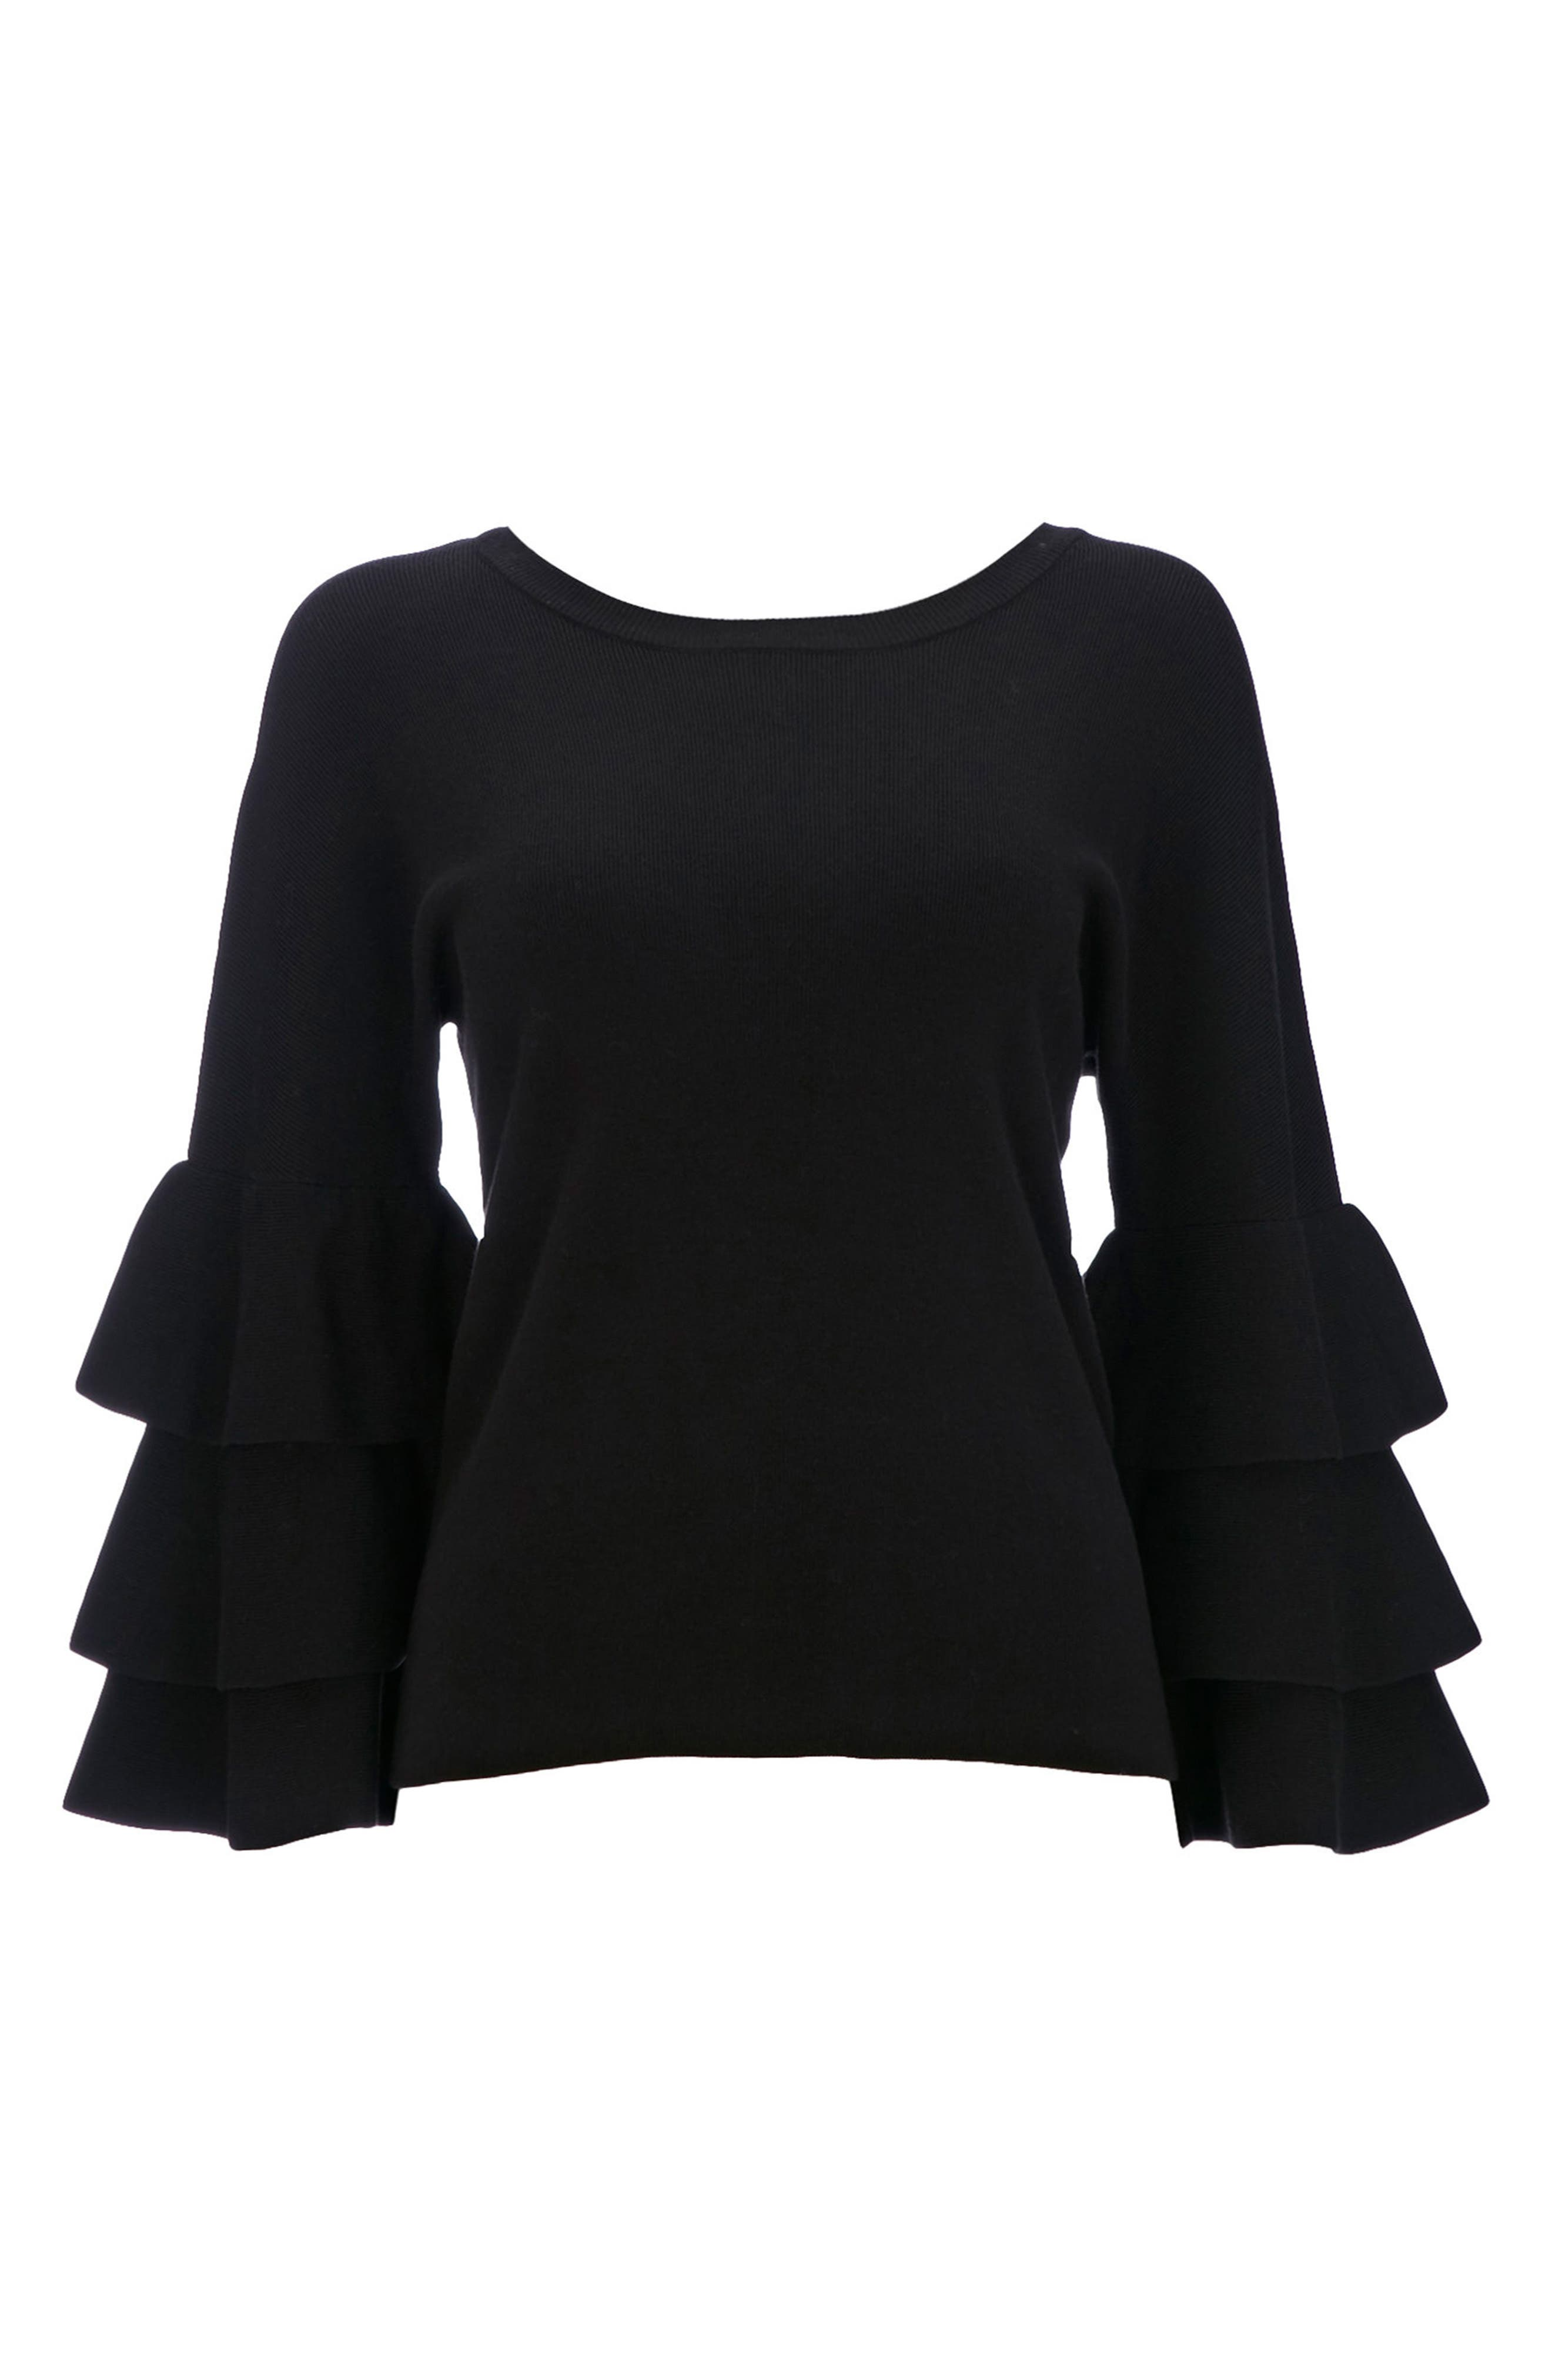 Tiered Ruffle Sleeve Top,                             Alternate thumbnail 4, color,                             001